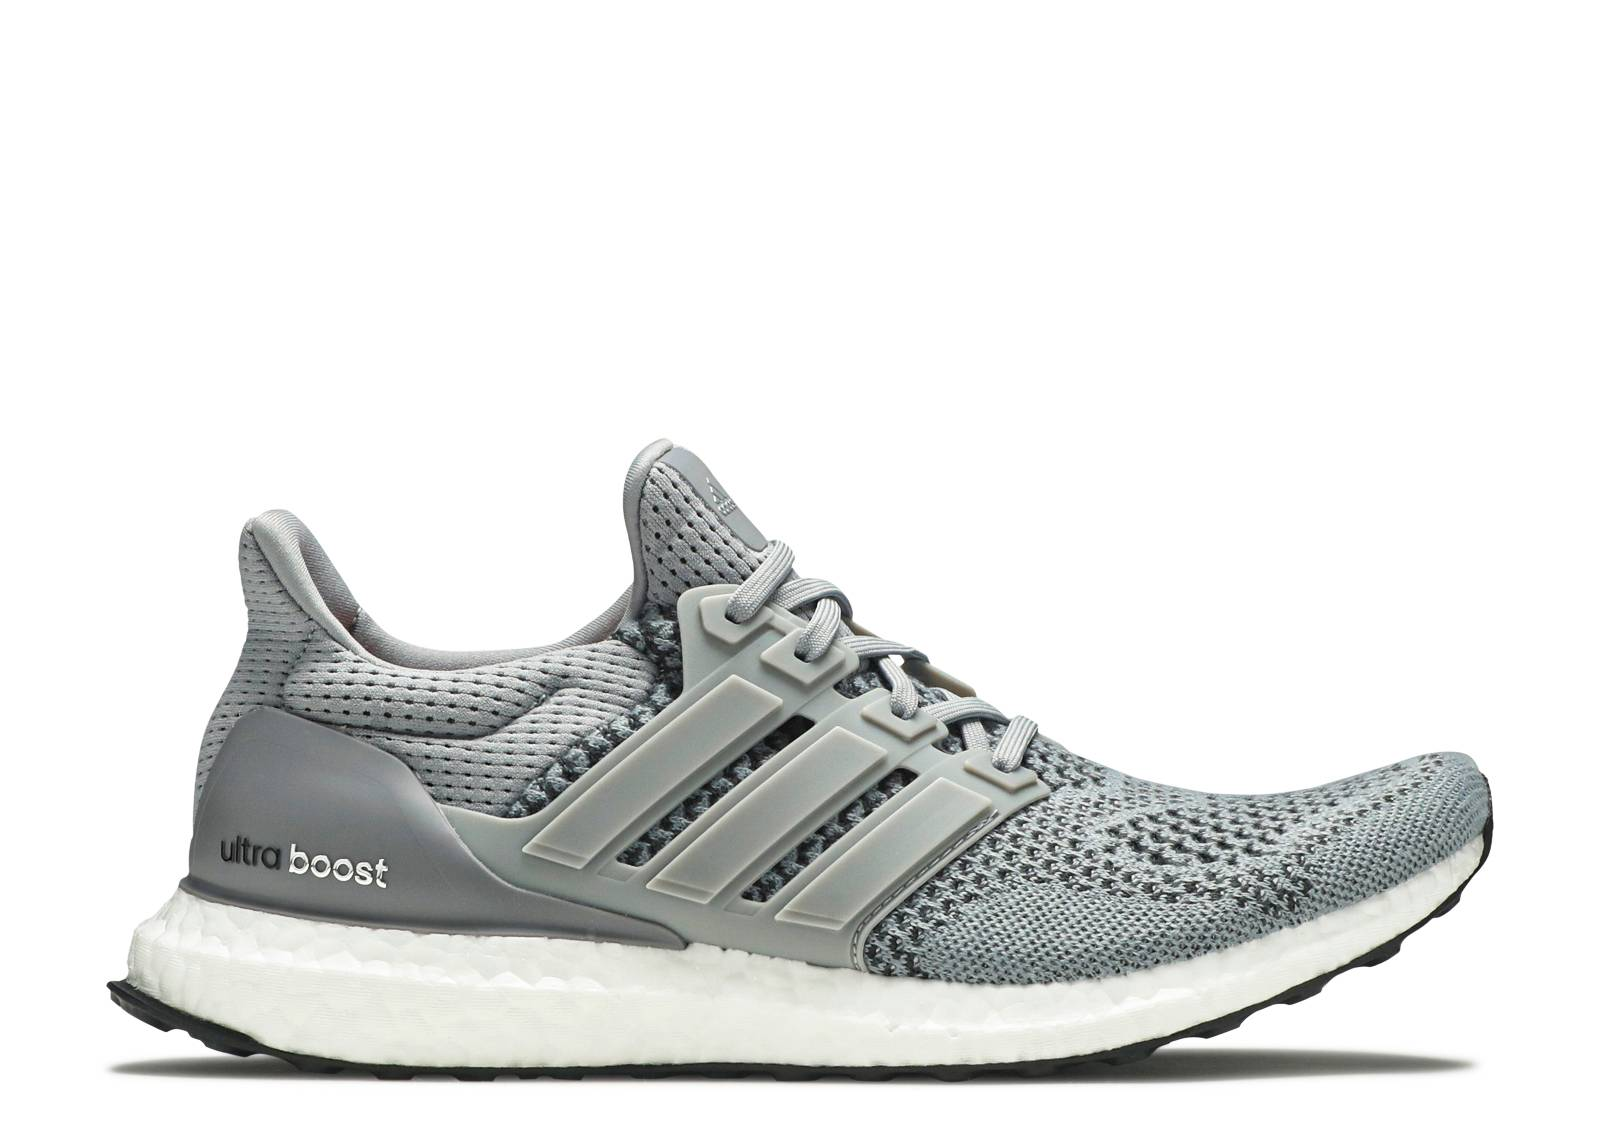 6edcc7e37643 Ultra Boost - Adidas - s77510 - grey white